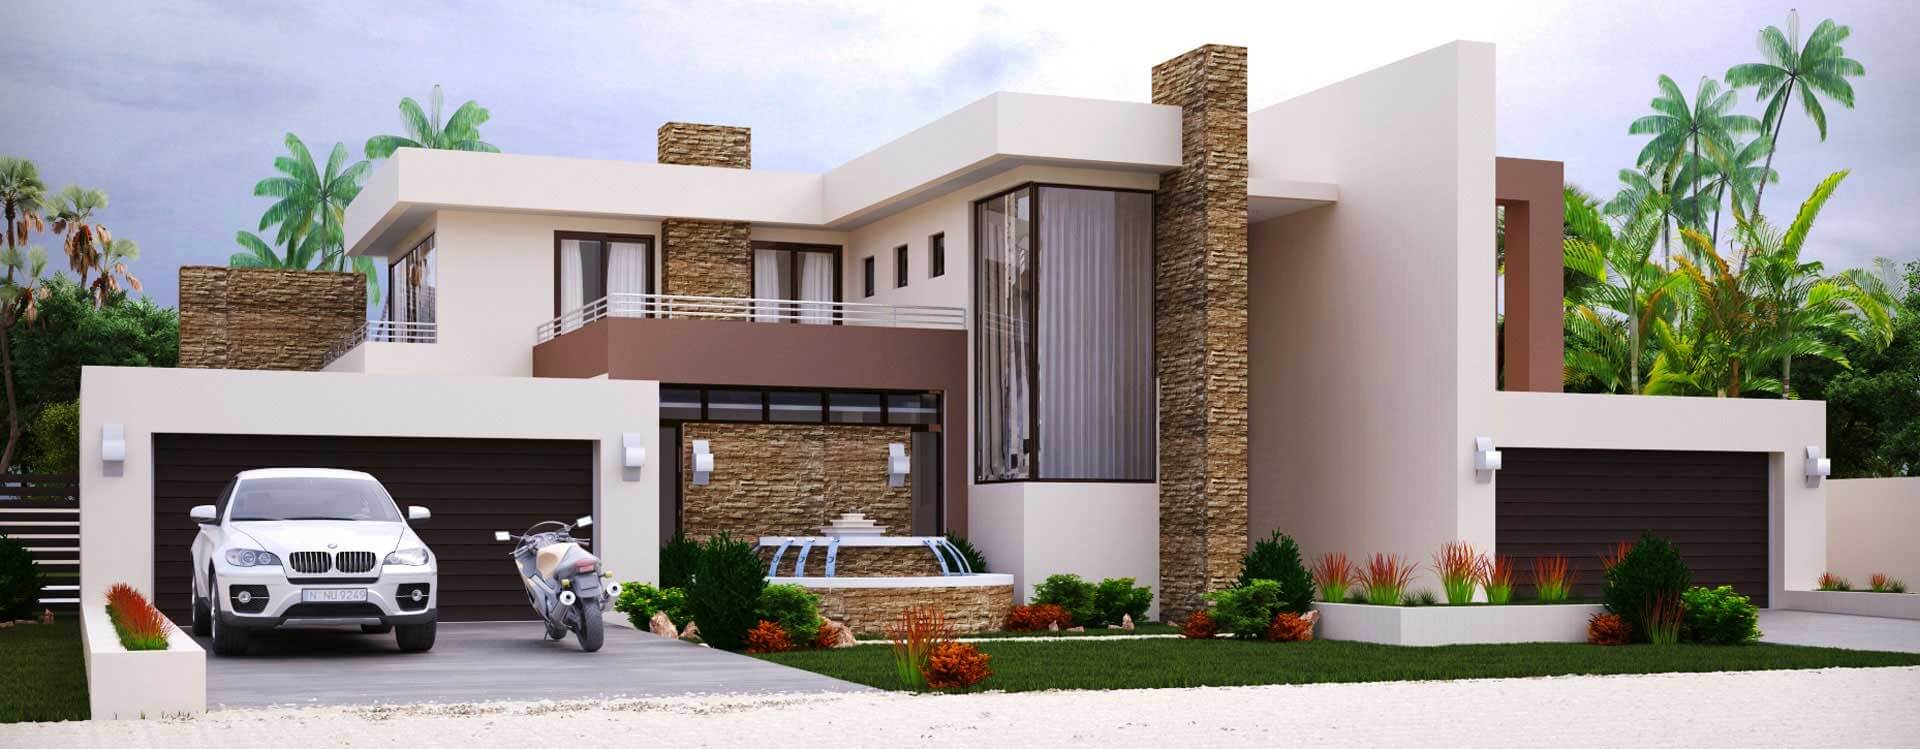 modern style house plan 4 bedroom double storey floor plans home design - House Plan Designs